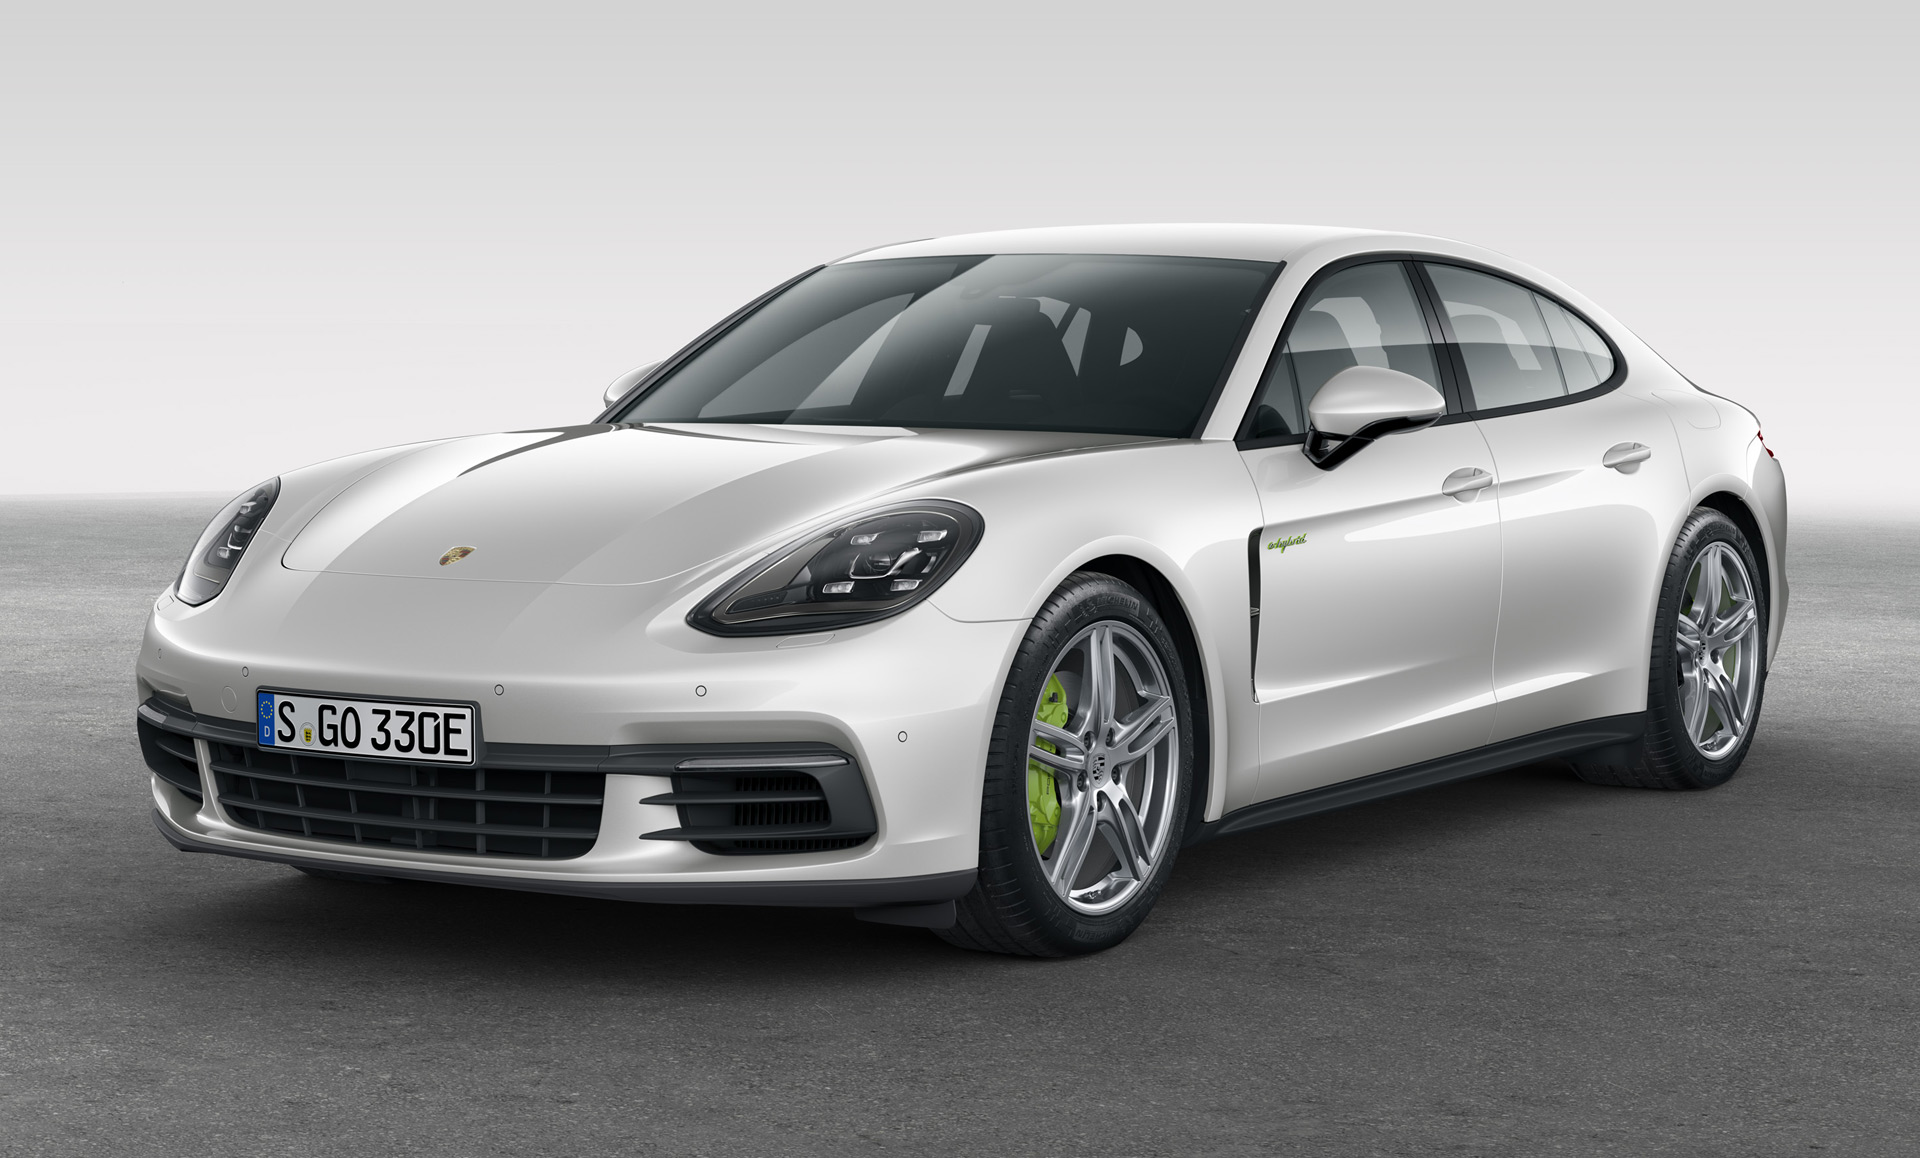 2018 Porsche Panamera 4 E Hybrid To Take On Tesla Model S